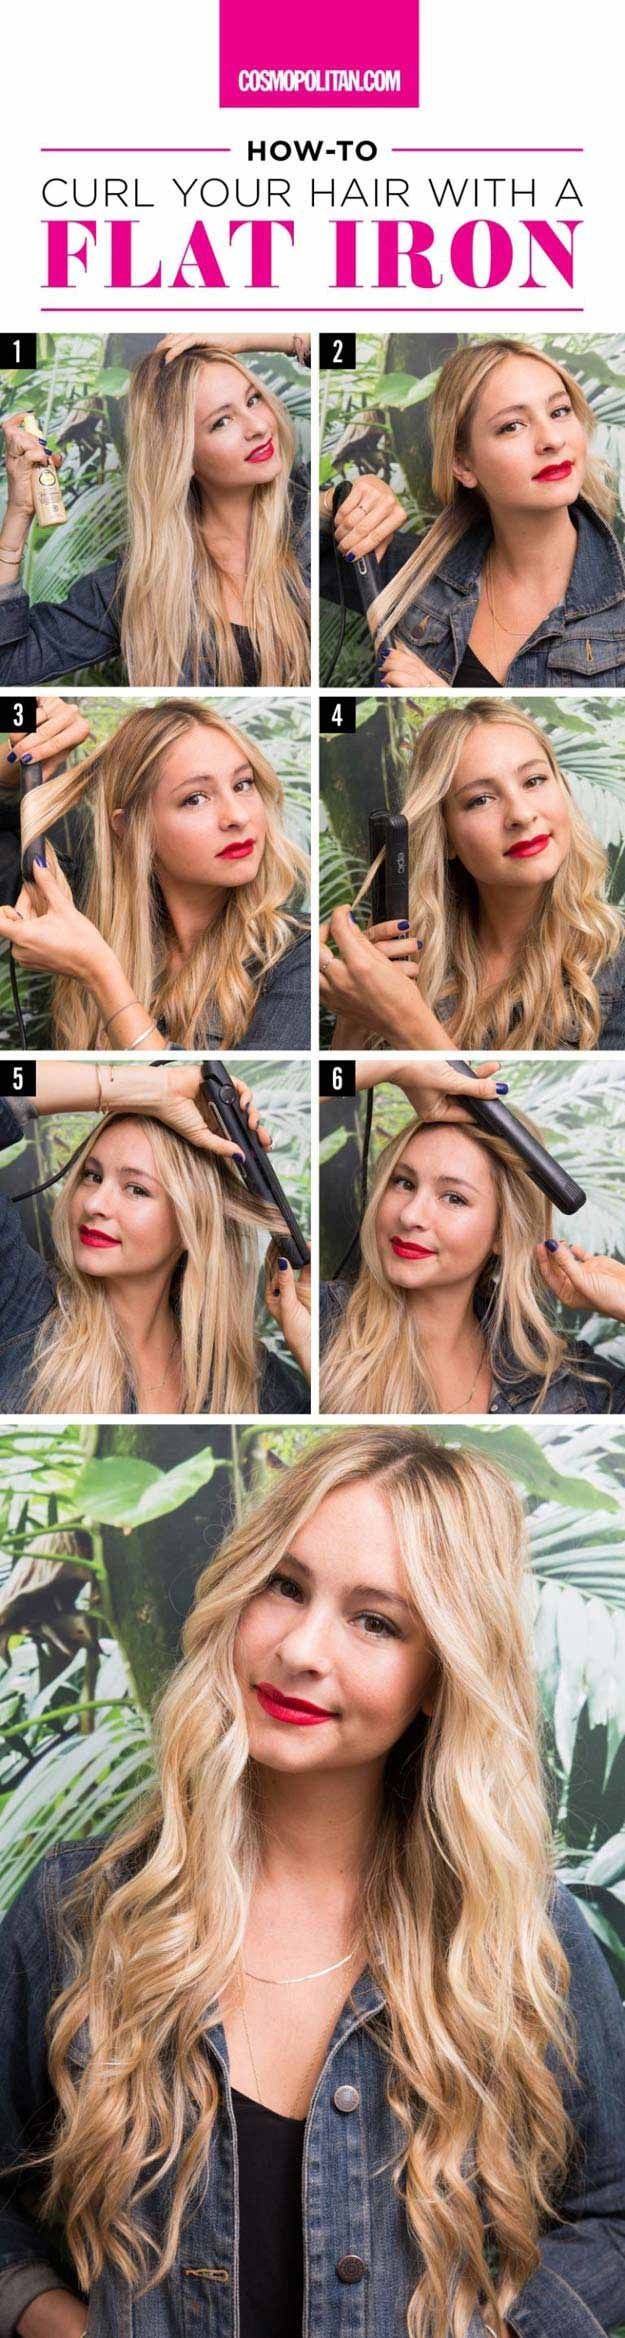 Hair Straightening Tutorials - Right Way to Curl Your Hair With a Straightener -Looking For The Best Hair Straightening Tutorials And The Best Straightening Tips On The Web? Whether You Are Looking To Use A Flat Iron, Or Trying To Straighten Your Hair Wit